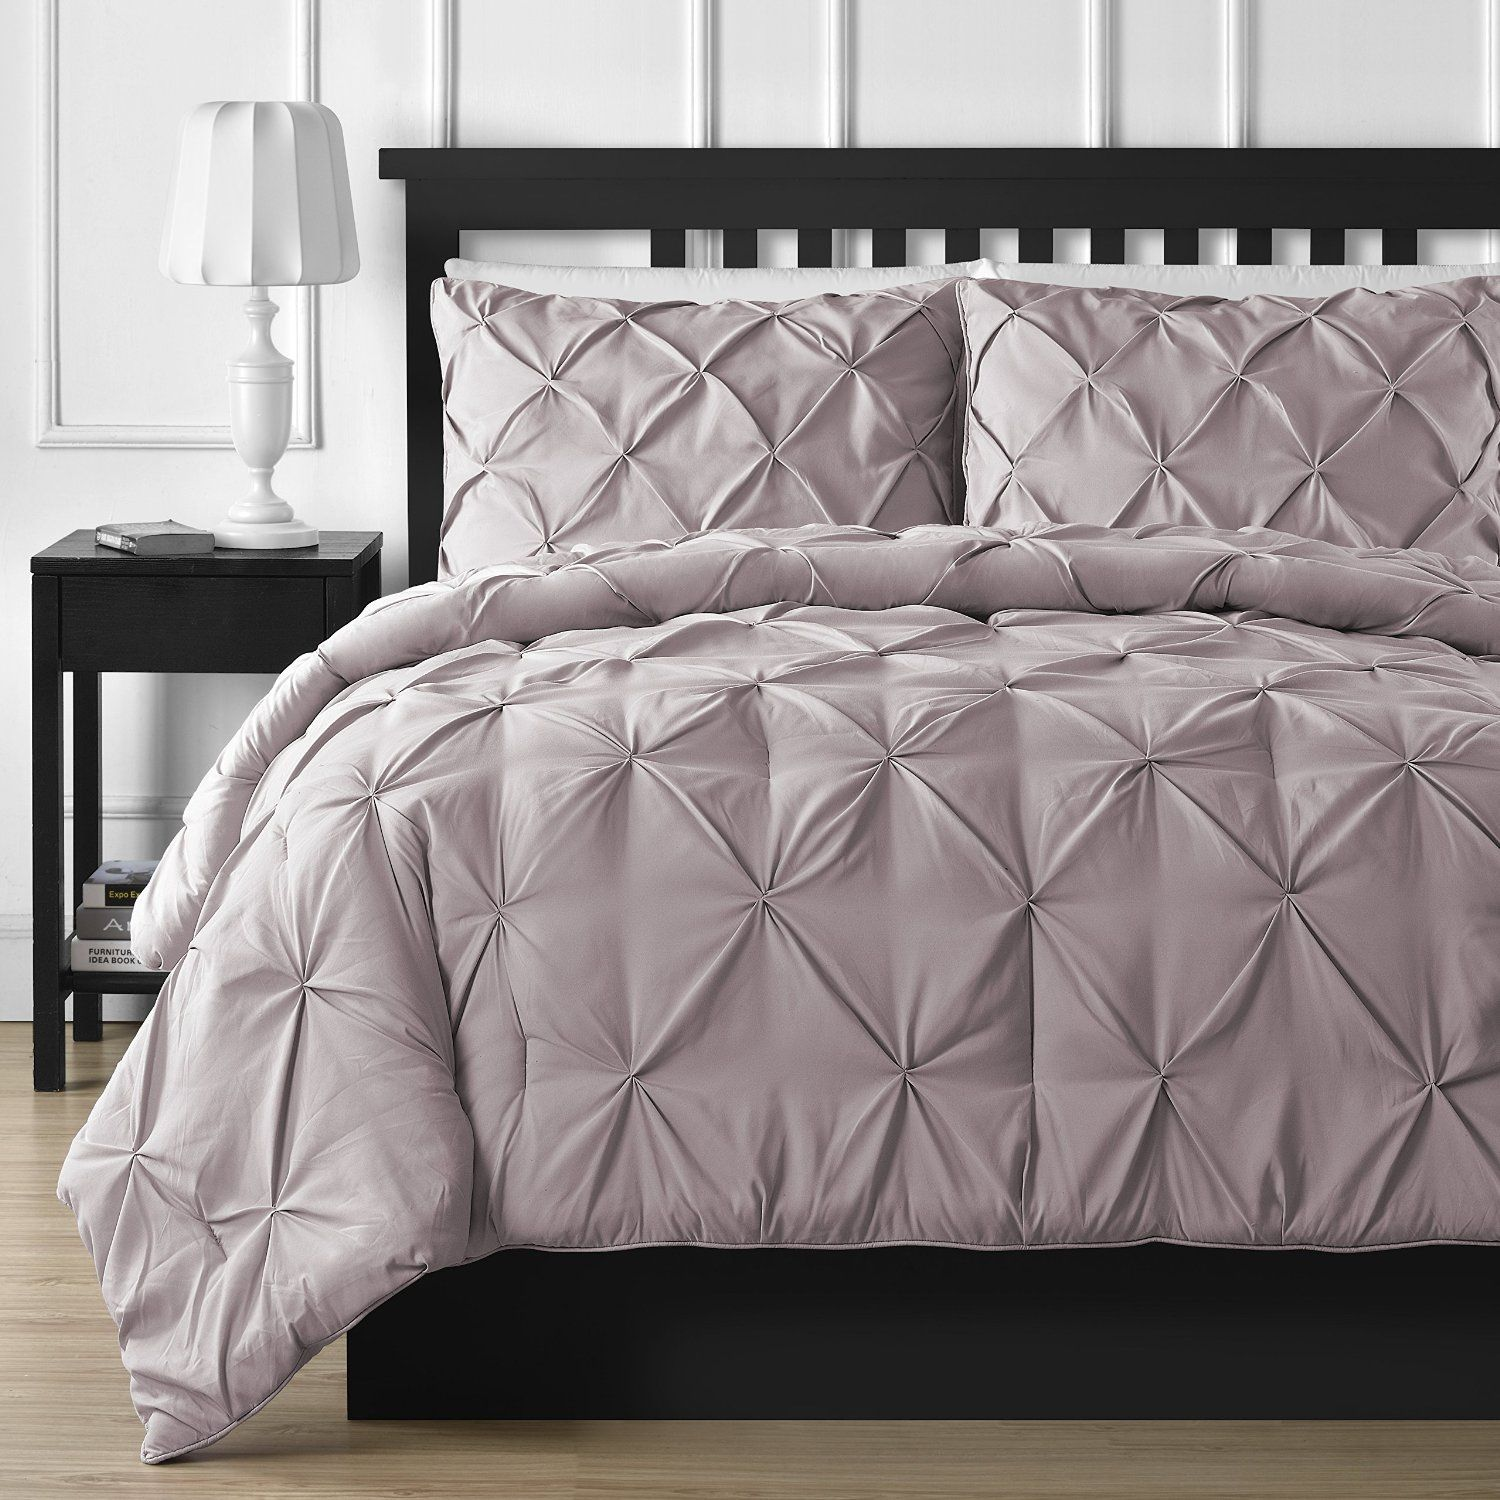 pinch hill style design comforter cover cherry set pleat black dsc duvet collection